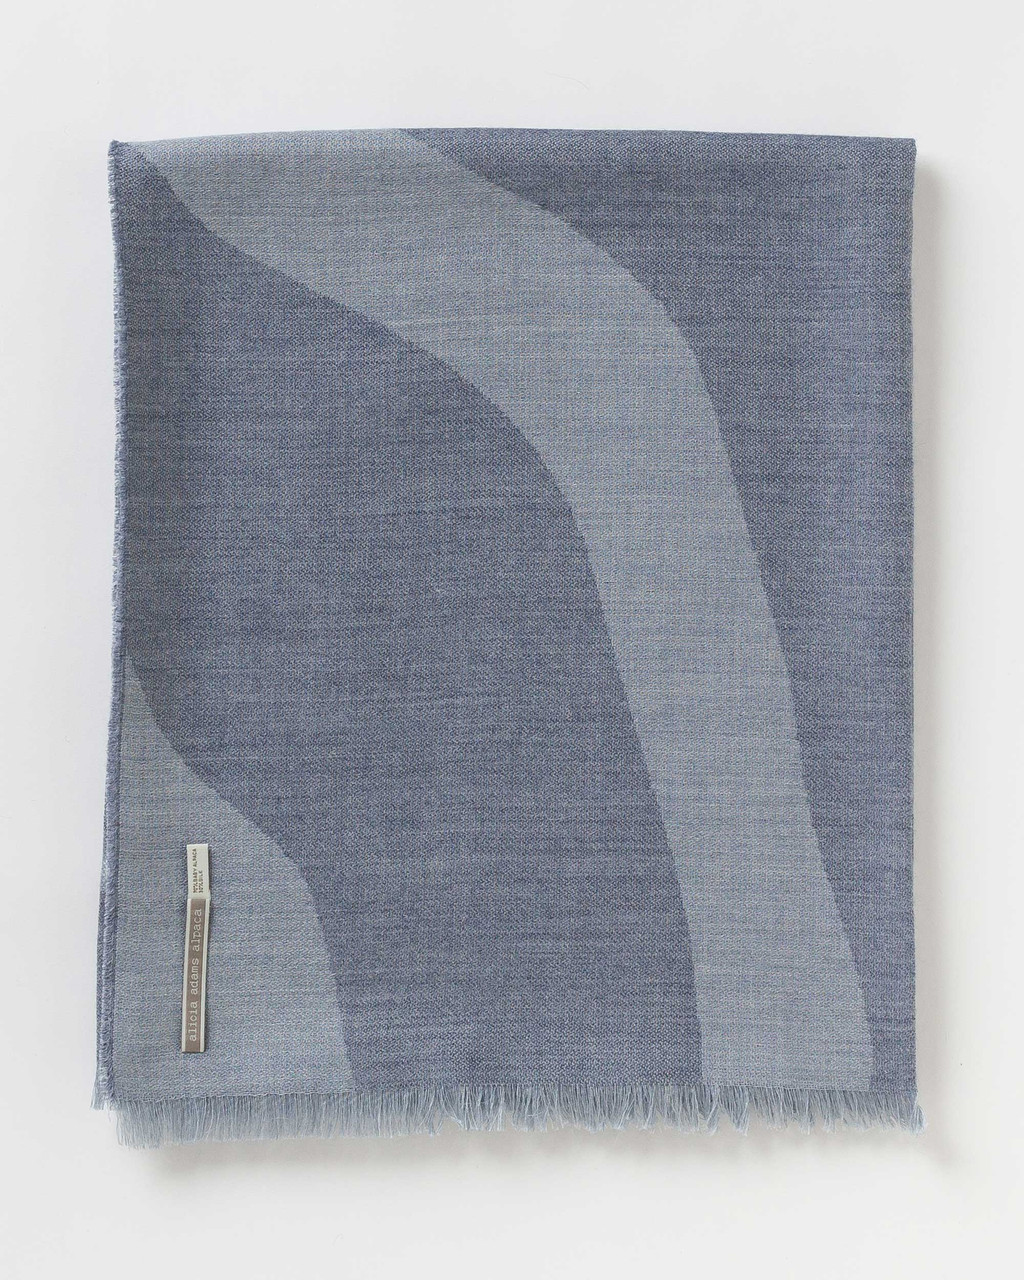 Alicia Adams Alpaca Zigby Wrap,  100 baby alpaca wrap, lightweight alpaca wrap, baby alpaca wrap, alpaca vs cashmere, denim blue and chambray alpaca wrap